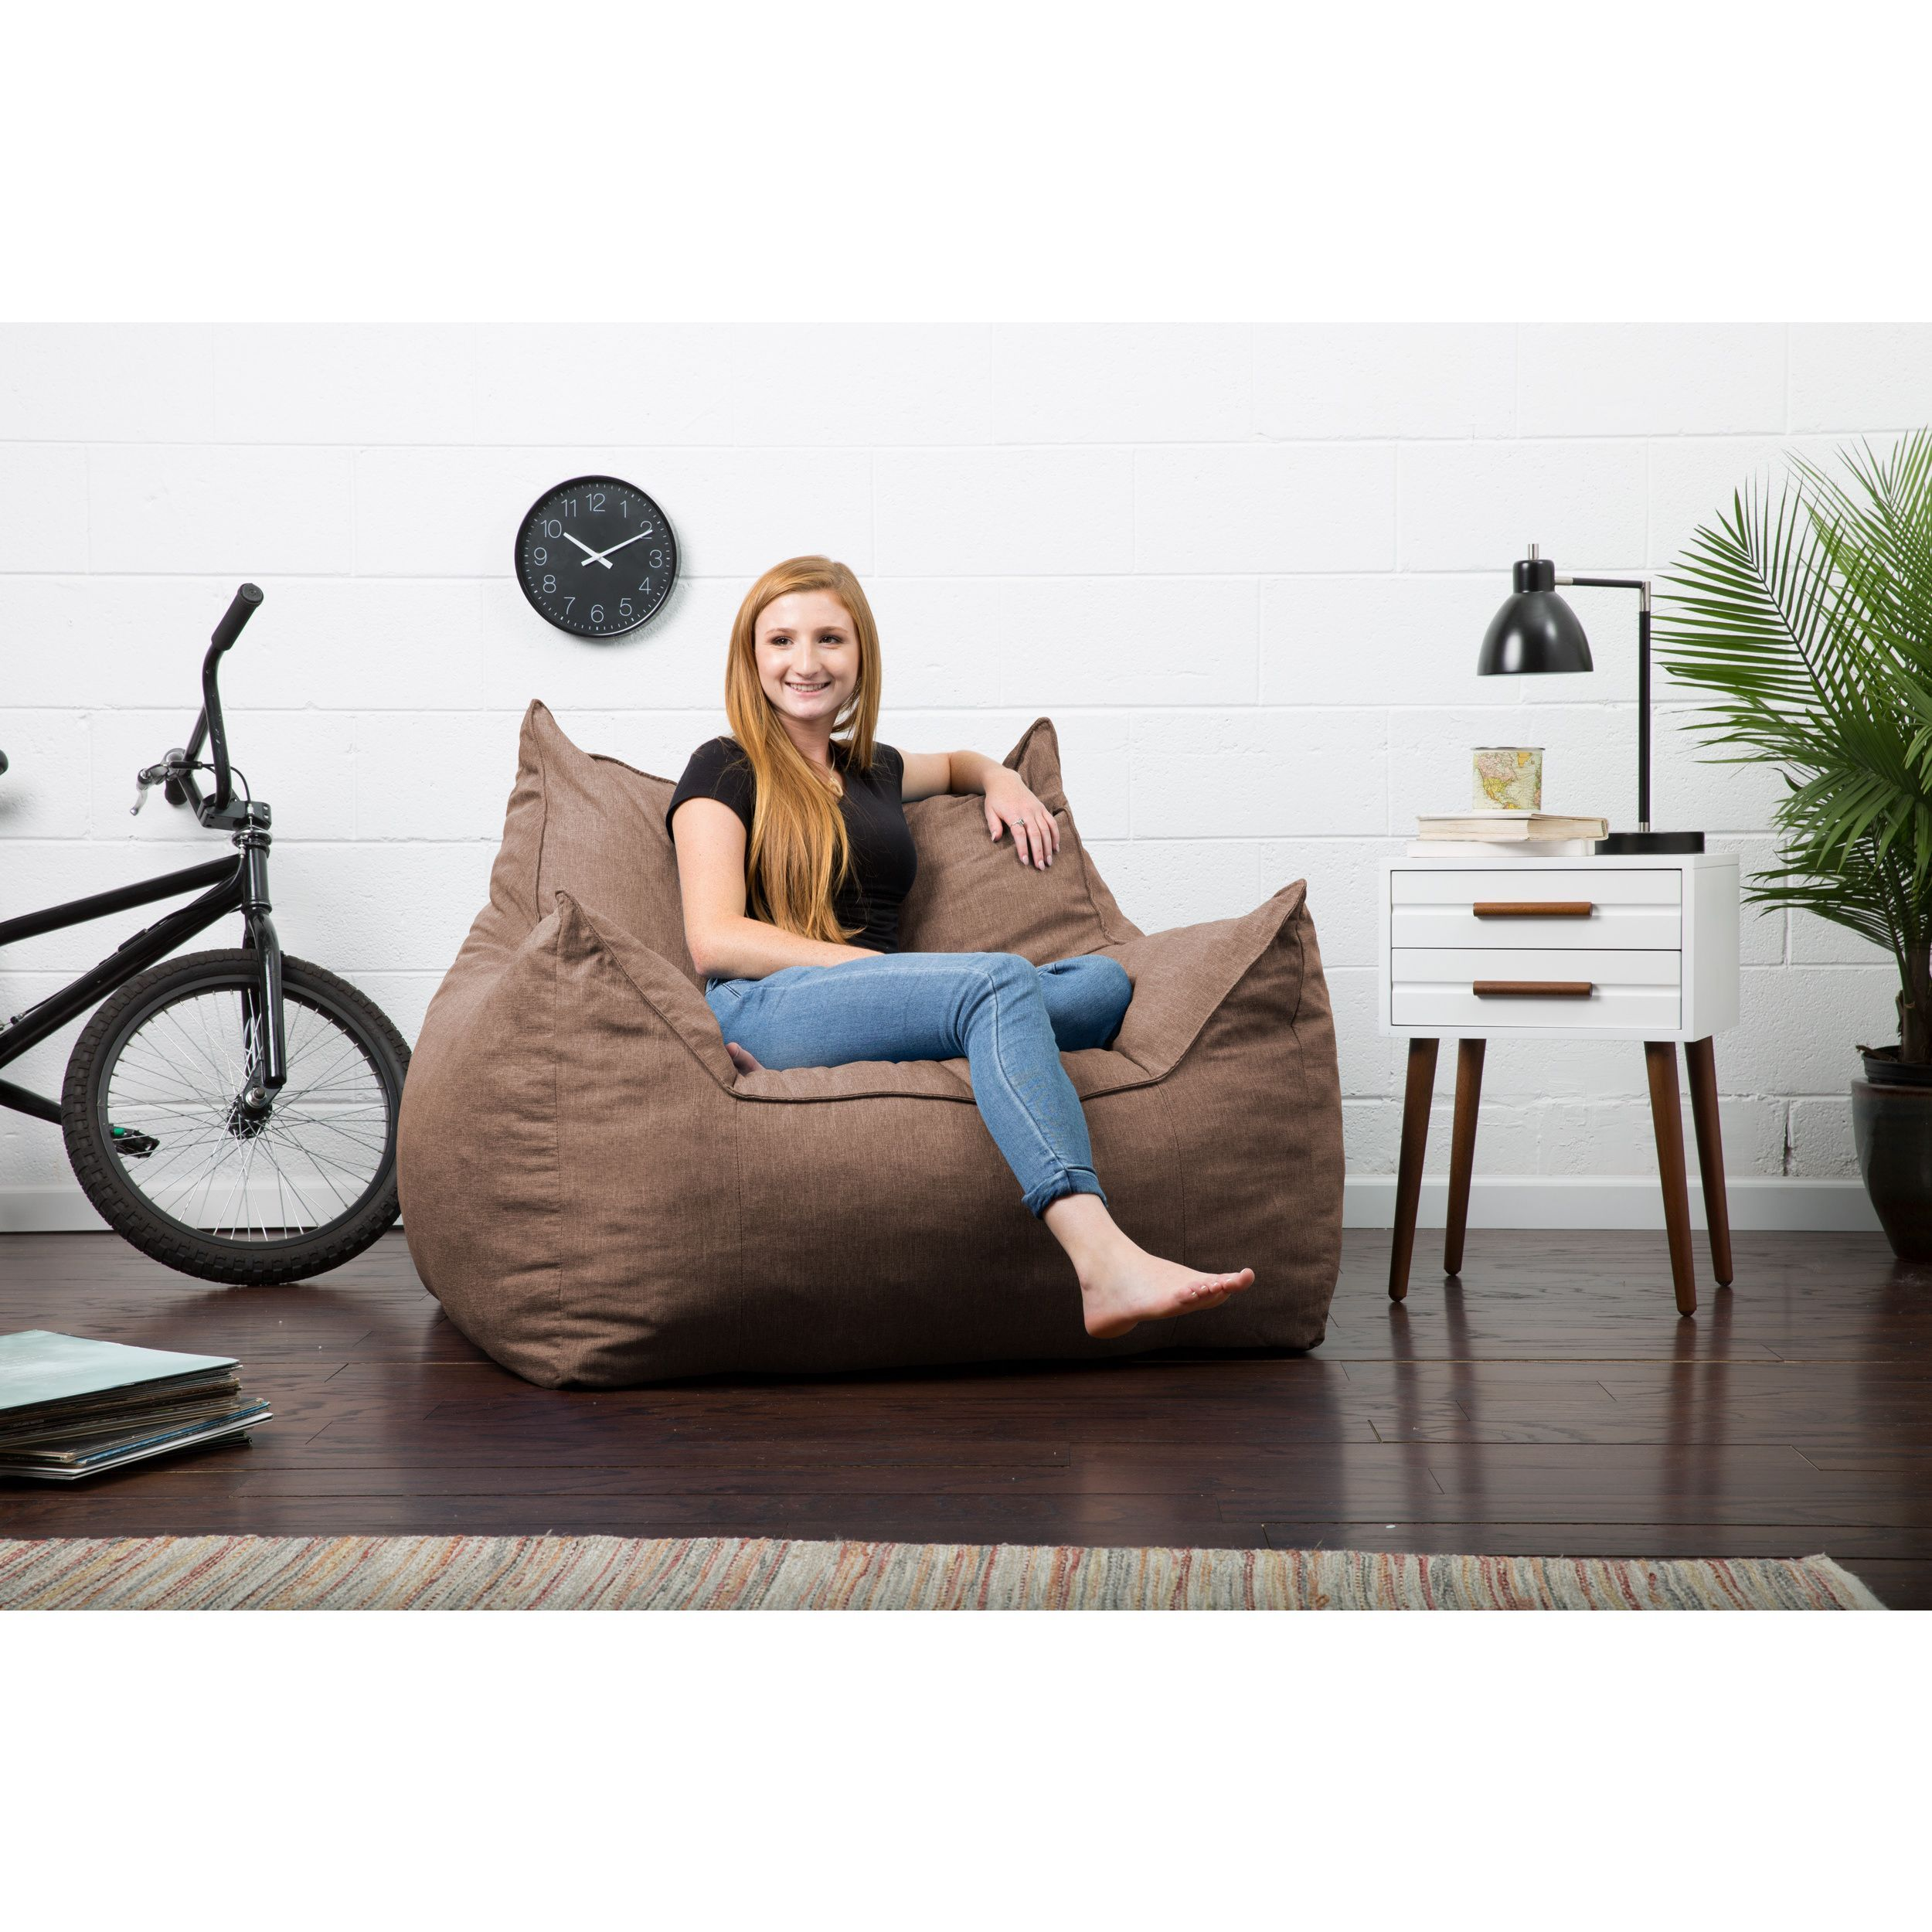 Memory Foam Bean Bag Chair Big Joe Lux Imperial Lounger Fuf Chair Union Products